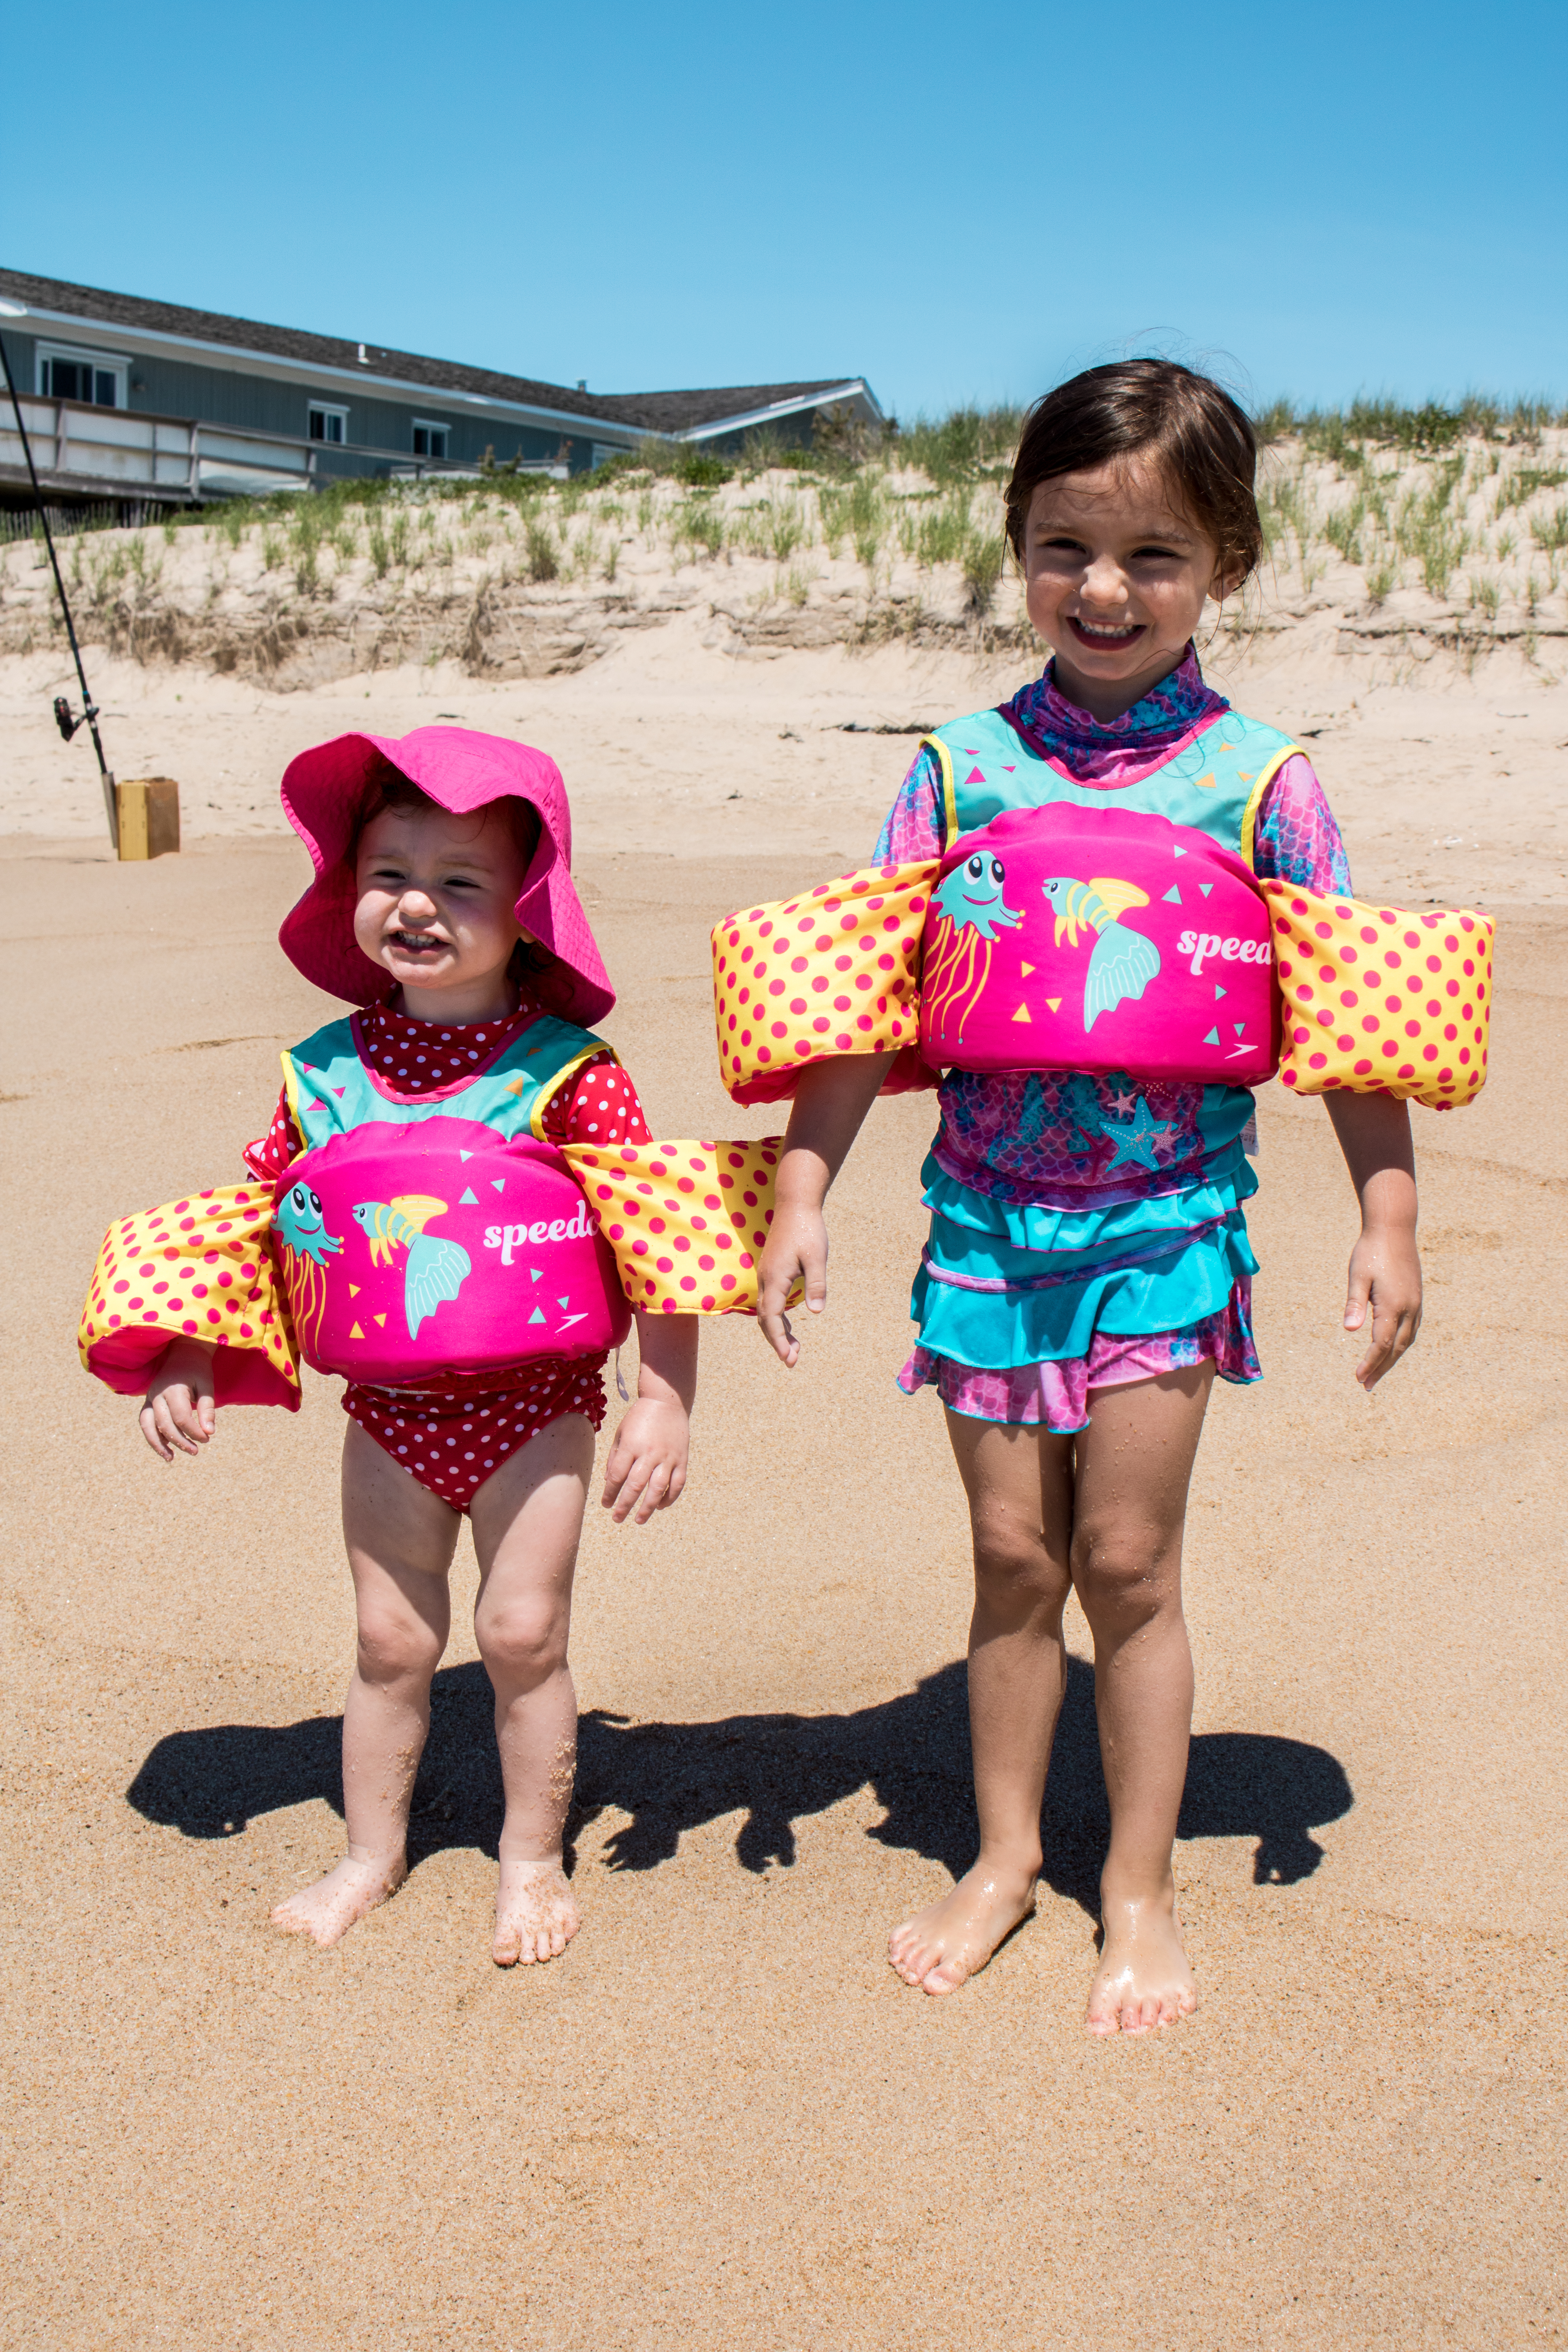 Sisters on the Beach - Hamptons Montauk NY - Confessions of a Northern Belle